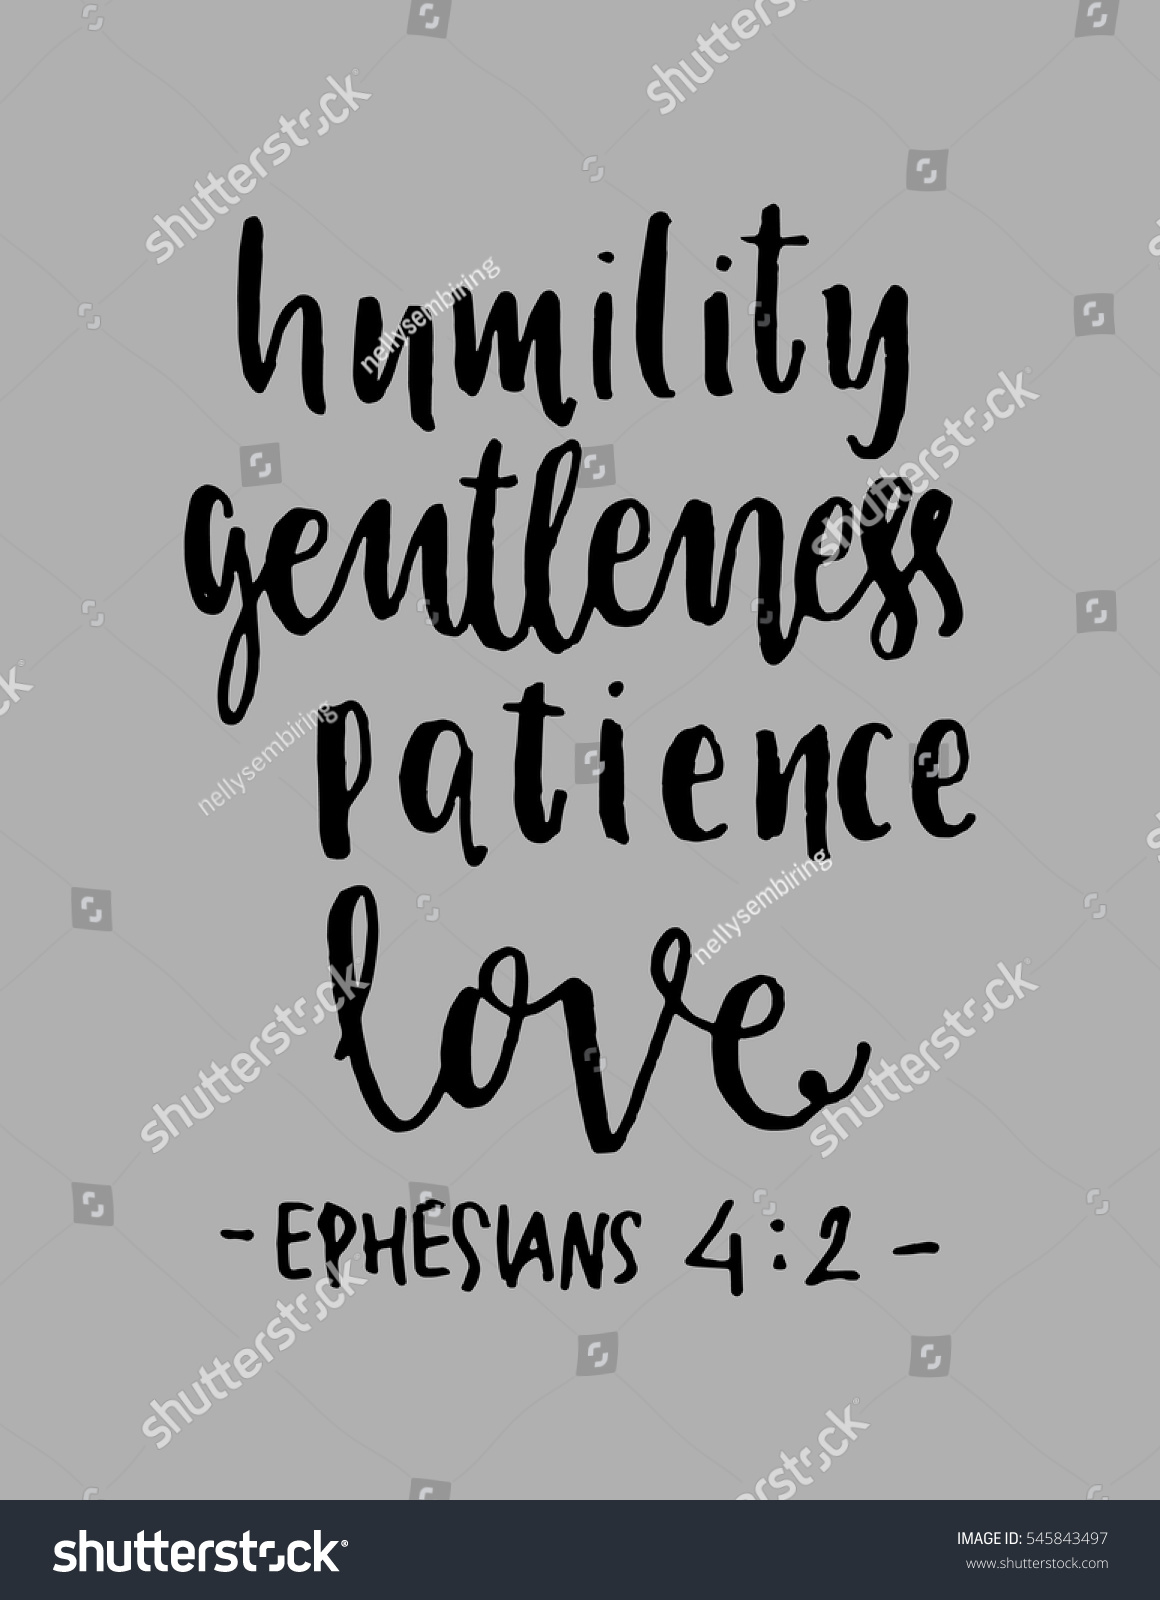 Bible Verses Love Quotes Humility Gentlenesspatience Love Hand Lettered Quote Stock Vector